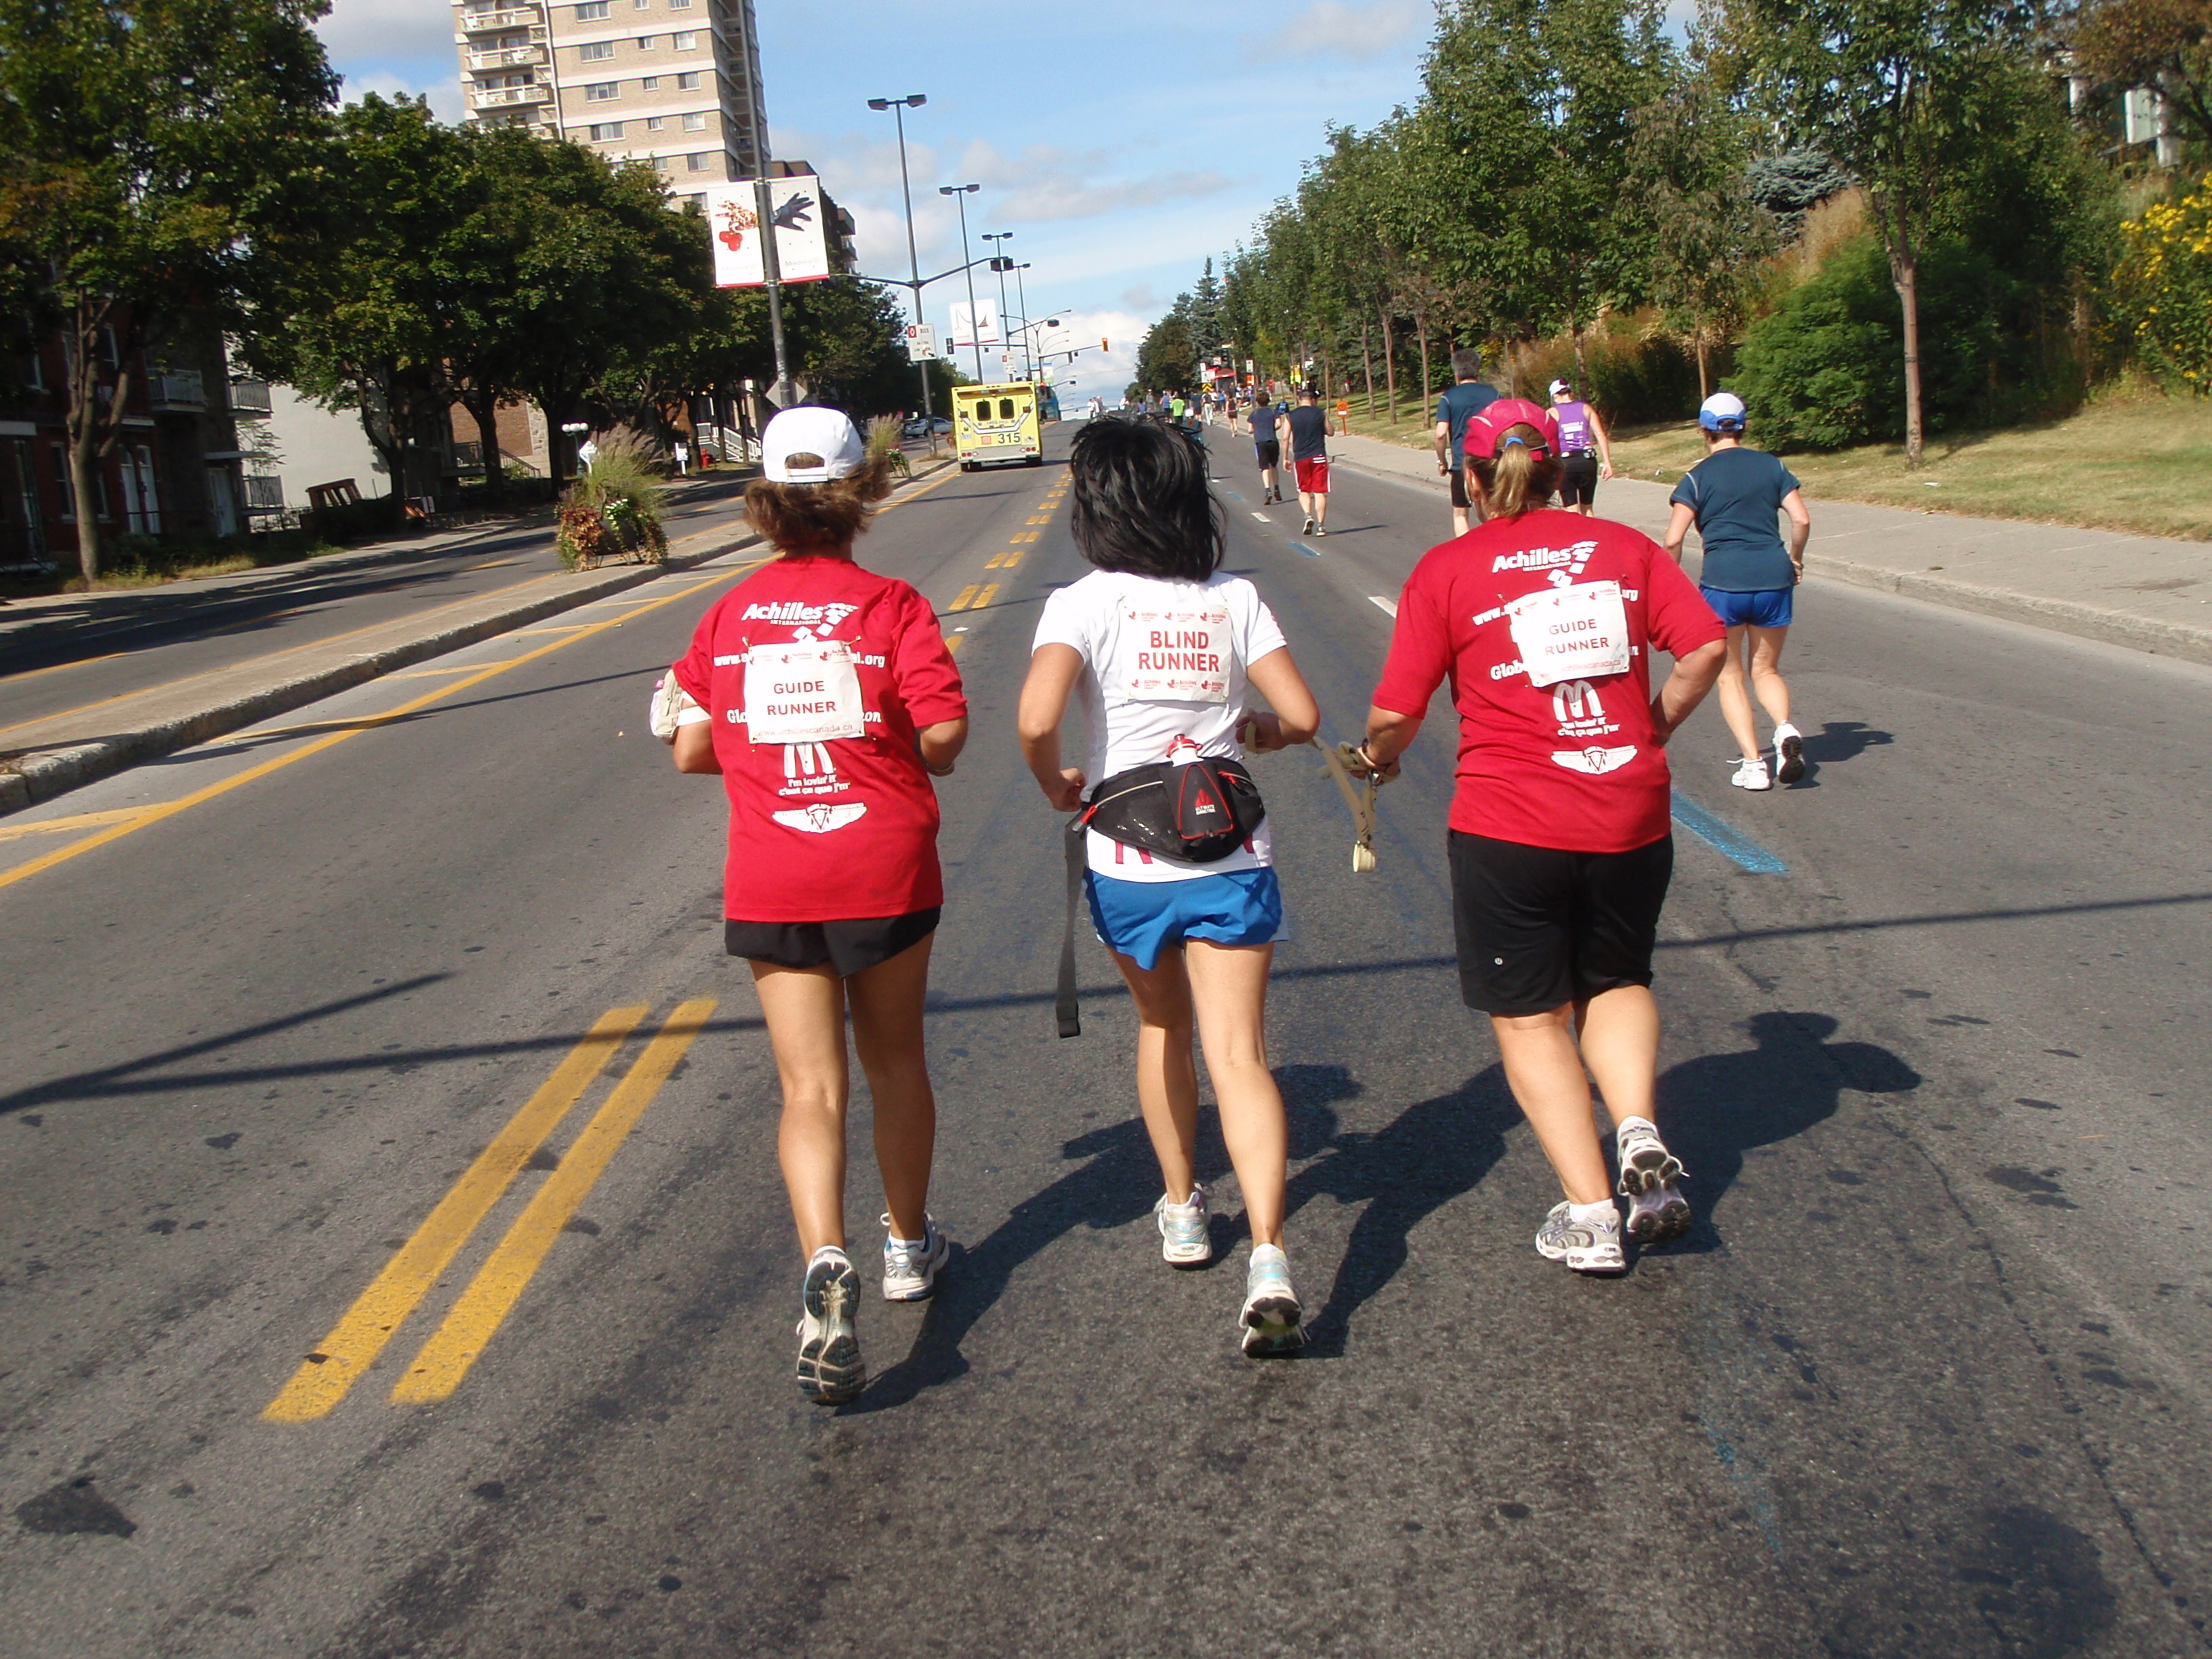 Two guide runners and visually impaired runner participating in a marathon